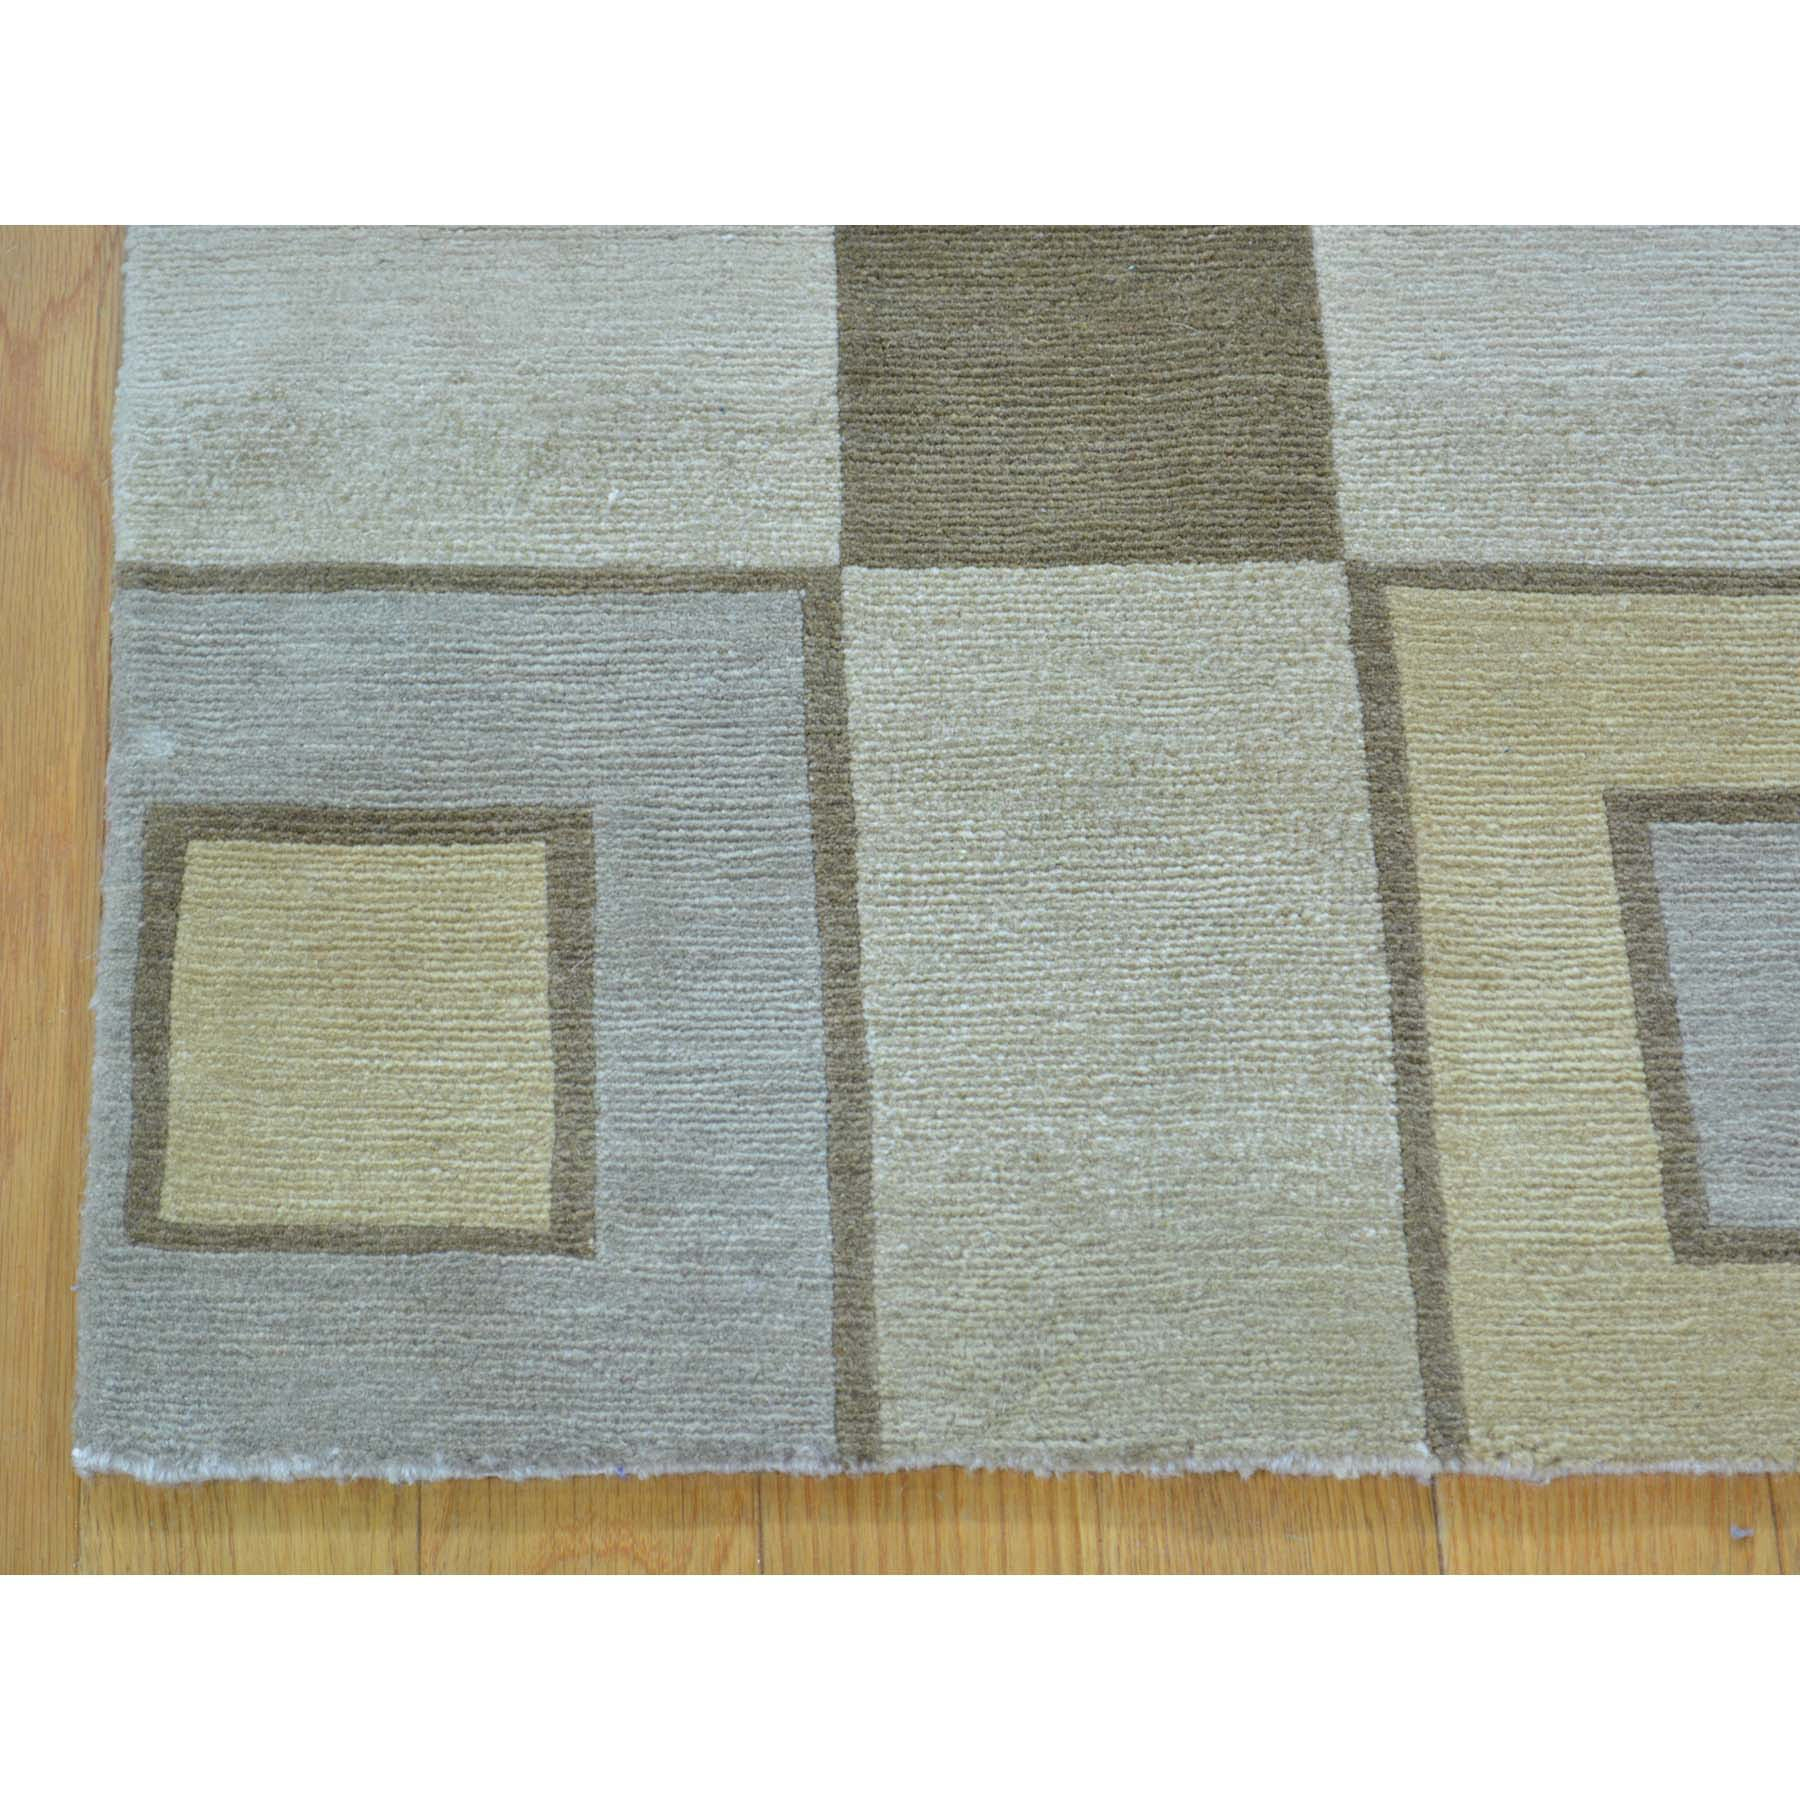 "Handmade Modern and Contemporary Rectangle Rug > Design# SH29228 > Size: 2'-0"" x 3'-0"" [ONLINE ONLY]"